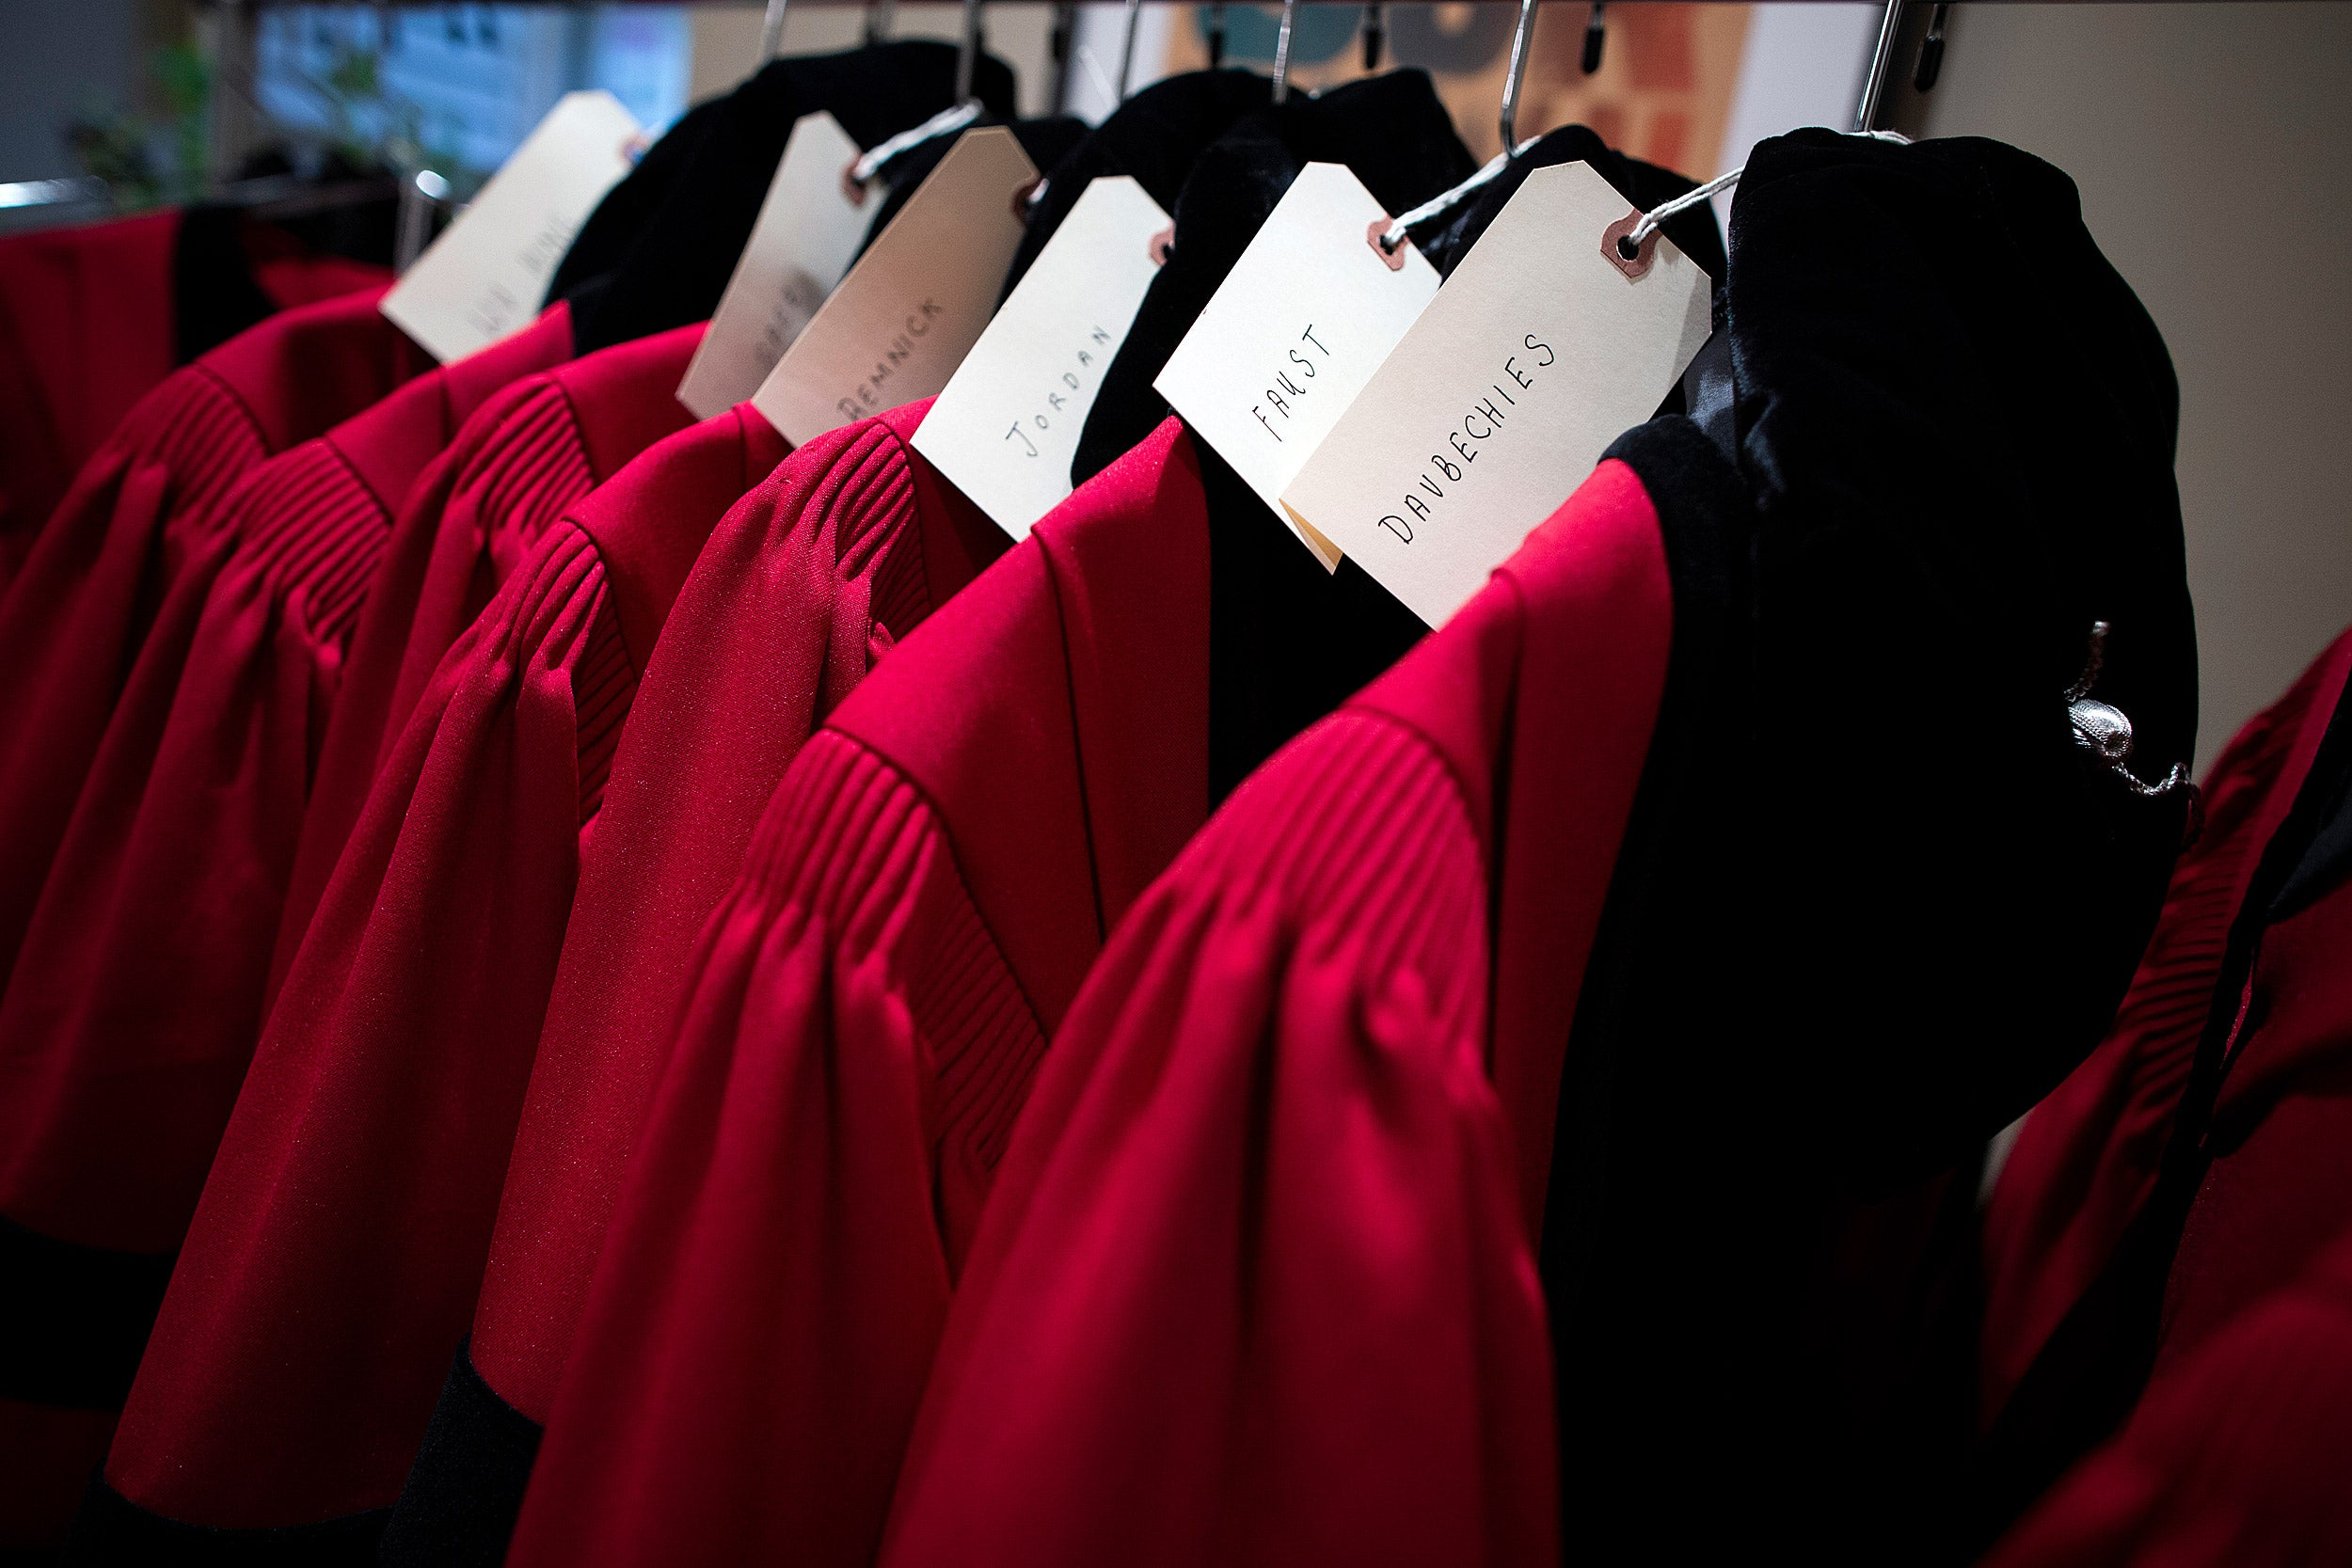 A row of robes await honorary degree recipients at Harvard's 368th Commencement.